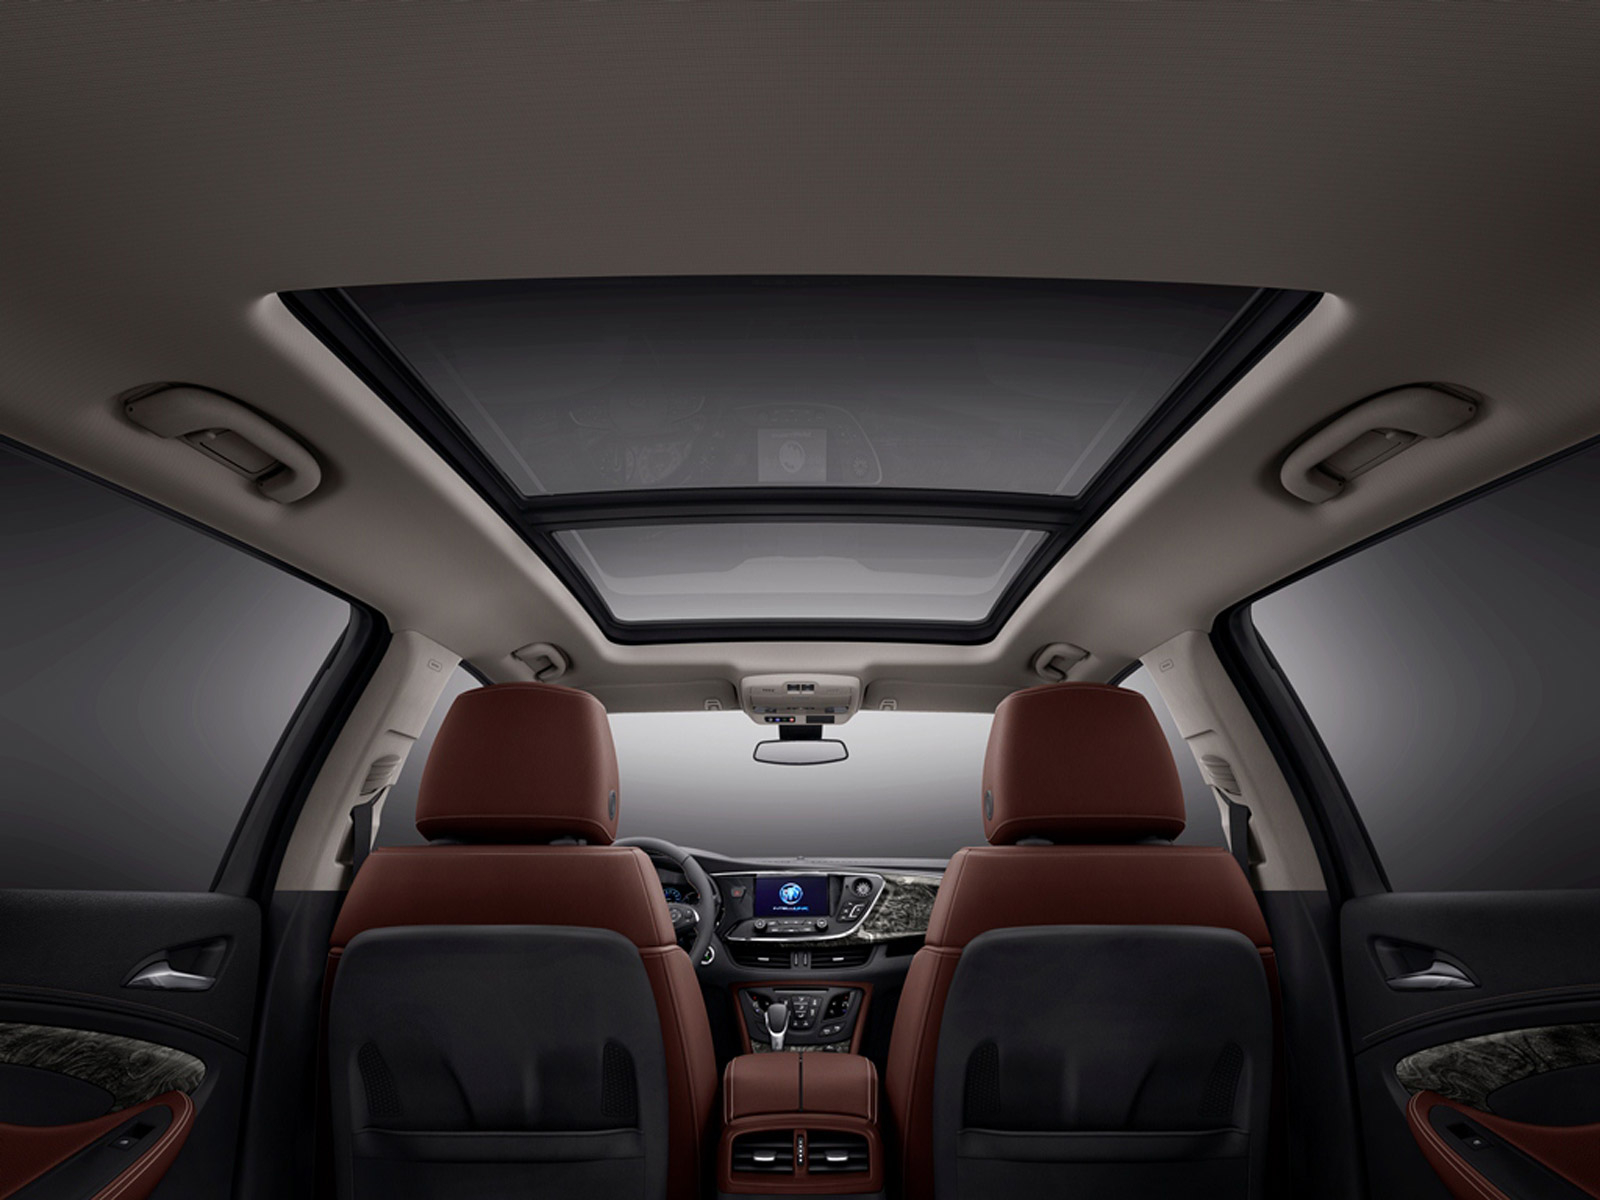 Buick Shows Off Interior Of New Envision Crossover 2022 Buick Envision Specs, Price, Interior